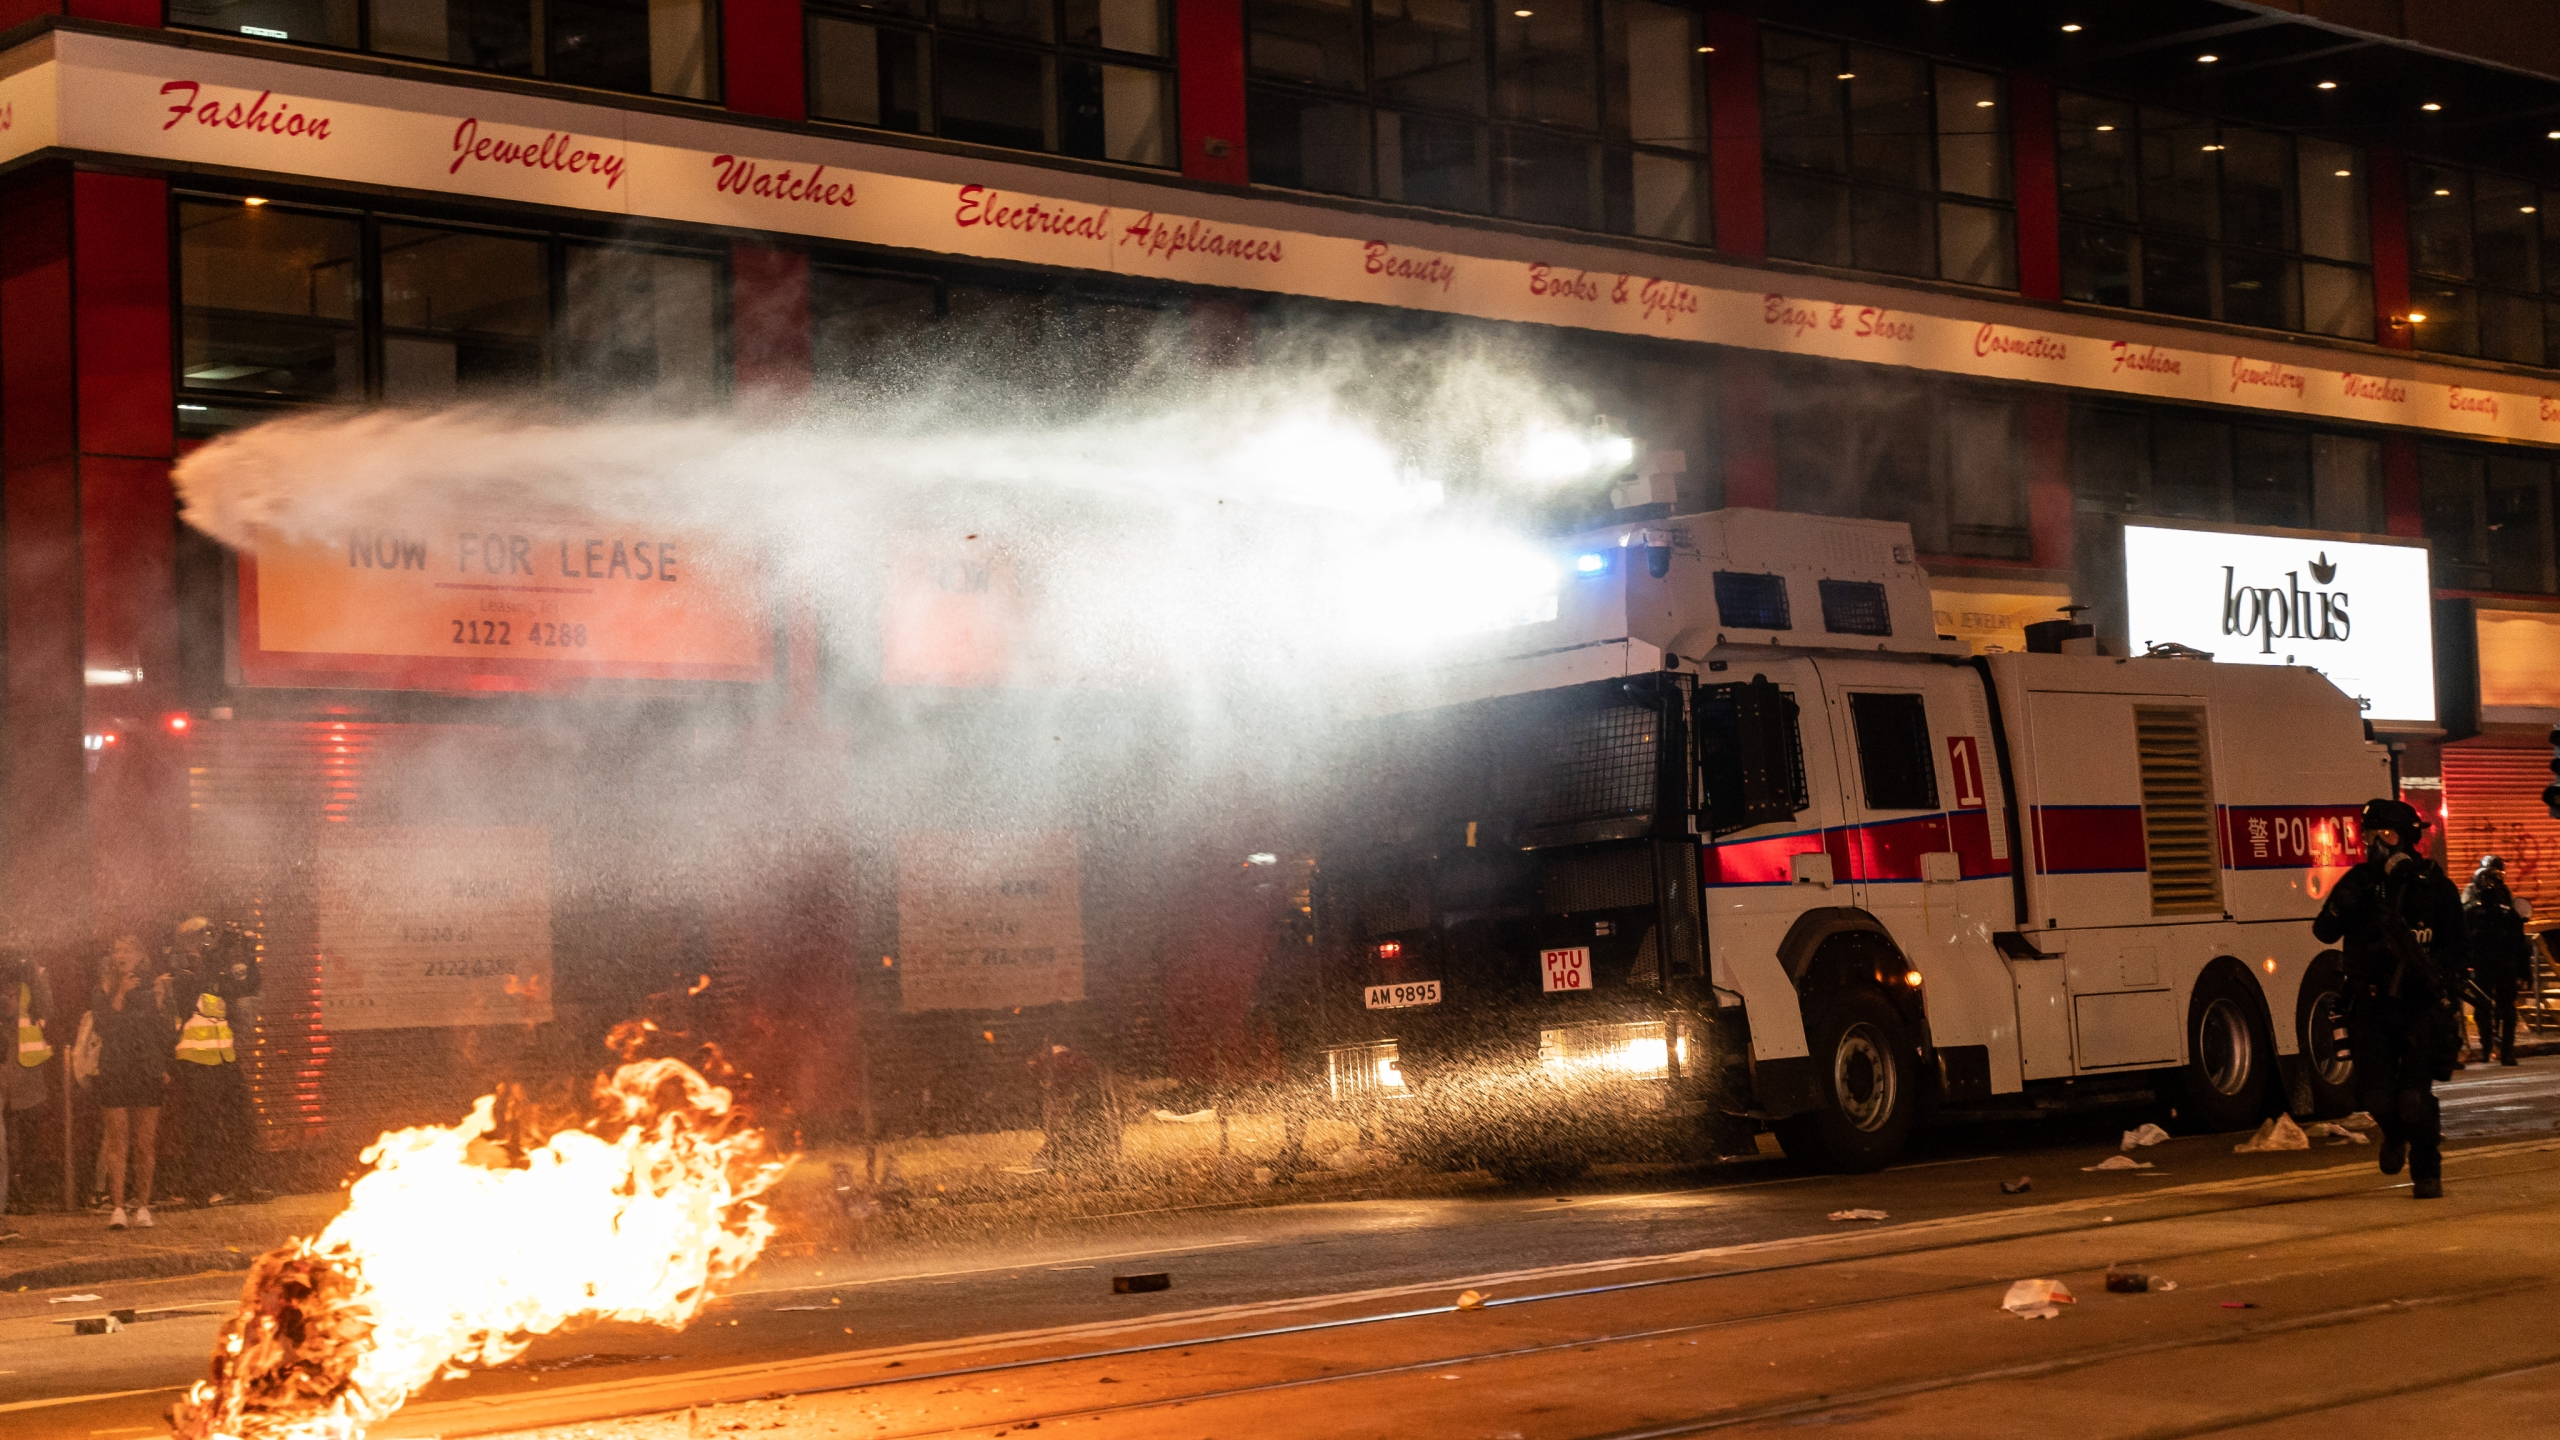 Police deploy a water canon vehicle to disperse protesters in Causeway Bay district during a rally on New Years Day on January 1, 2020, in Hong Kong. (Credit: Anthony Kwan/Getty Images)